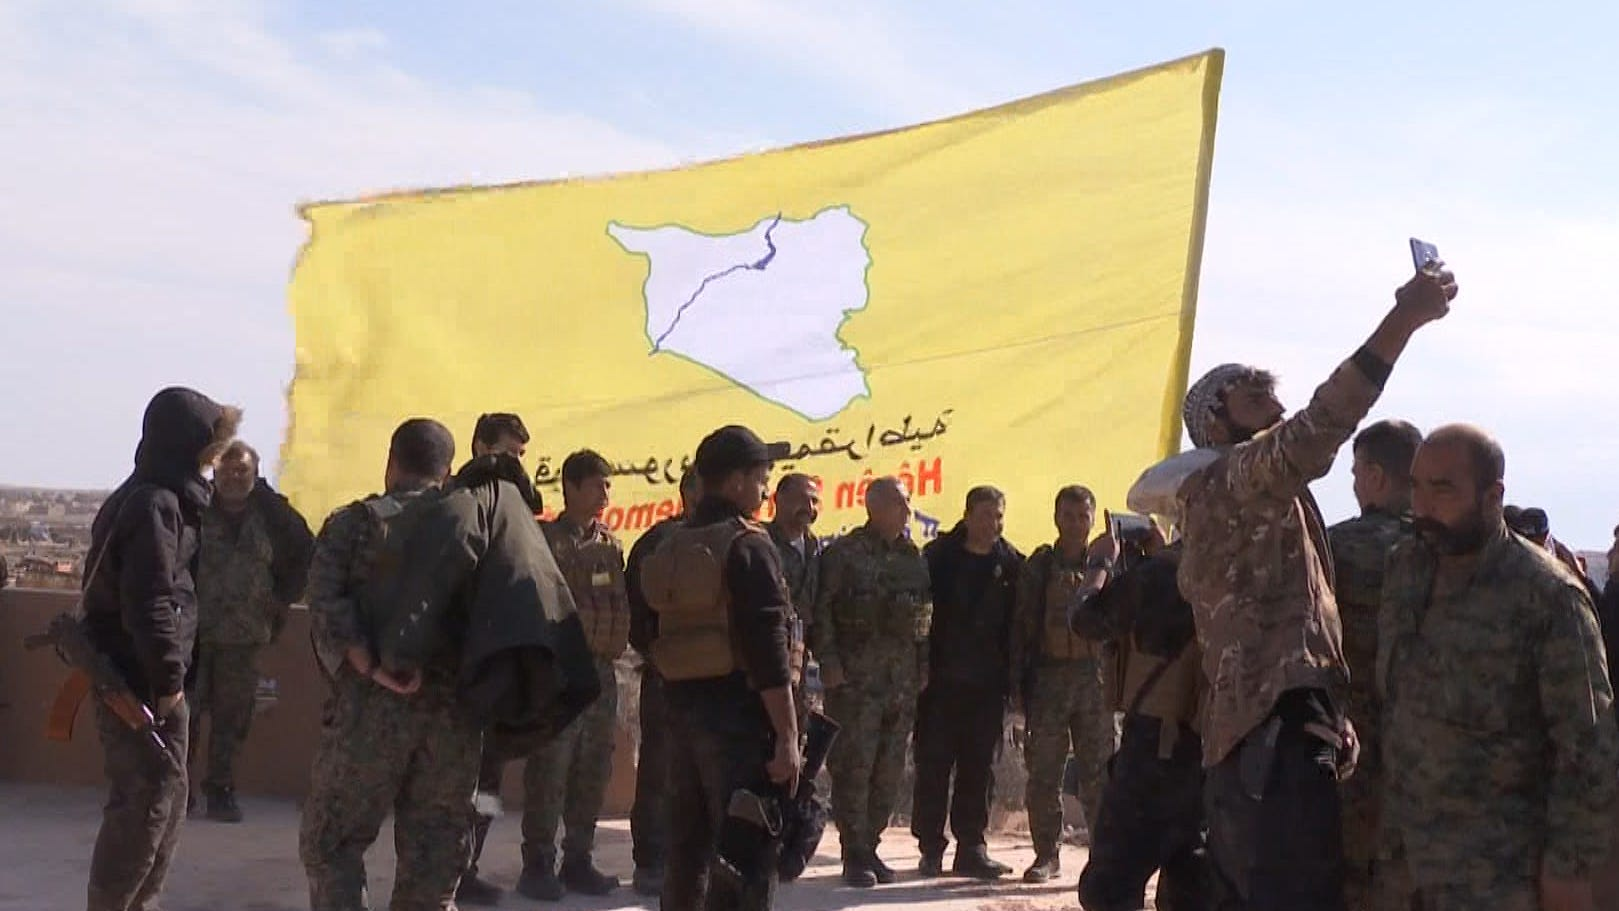 An image grab released by the Kurdish Ronahi TV on March 23, 2019 shows the US-backed Syrian Democratic Forces (SDF) raising their flag atop a building in the Islamic State group's bastion in the eastern Syrian village of Baghouz.